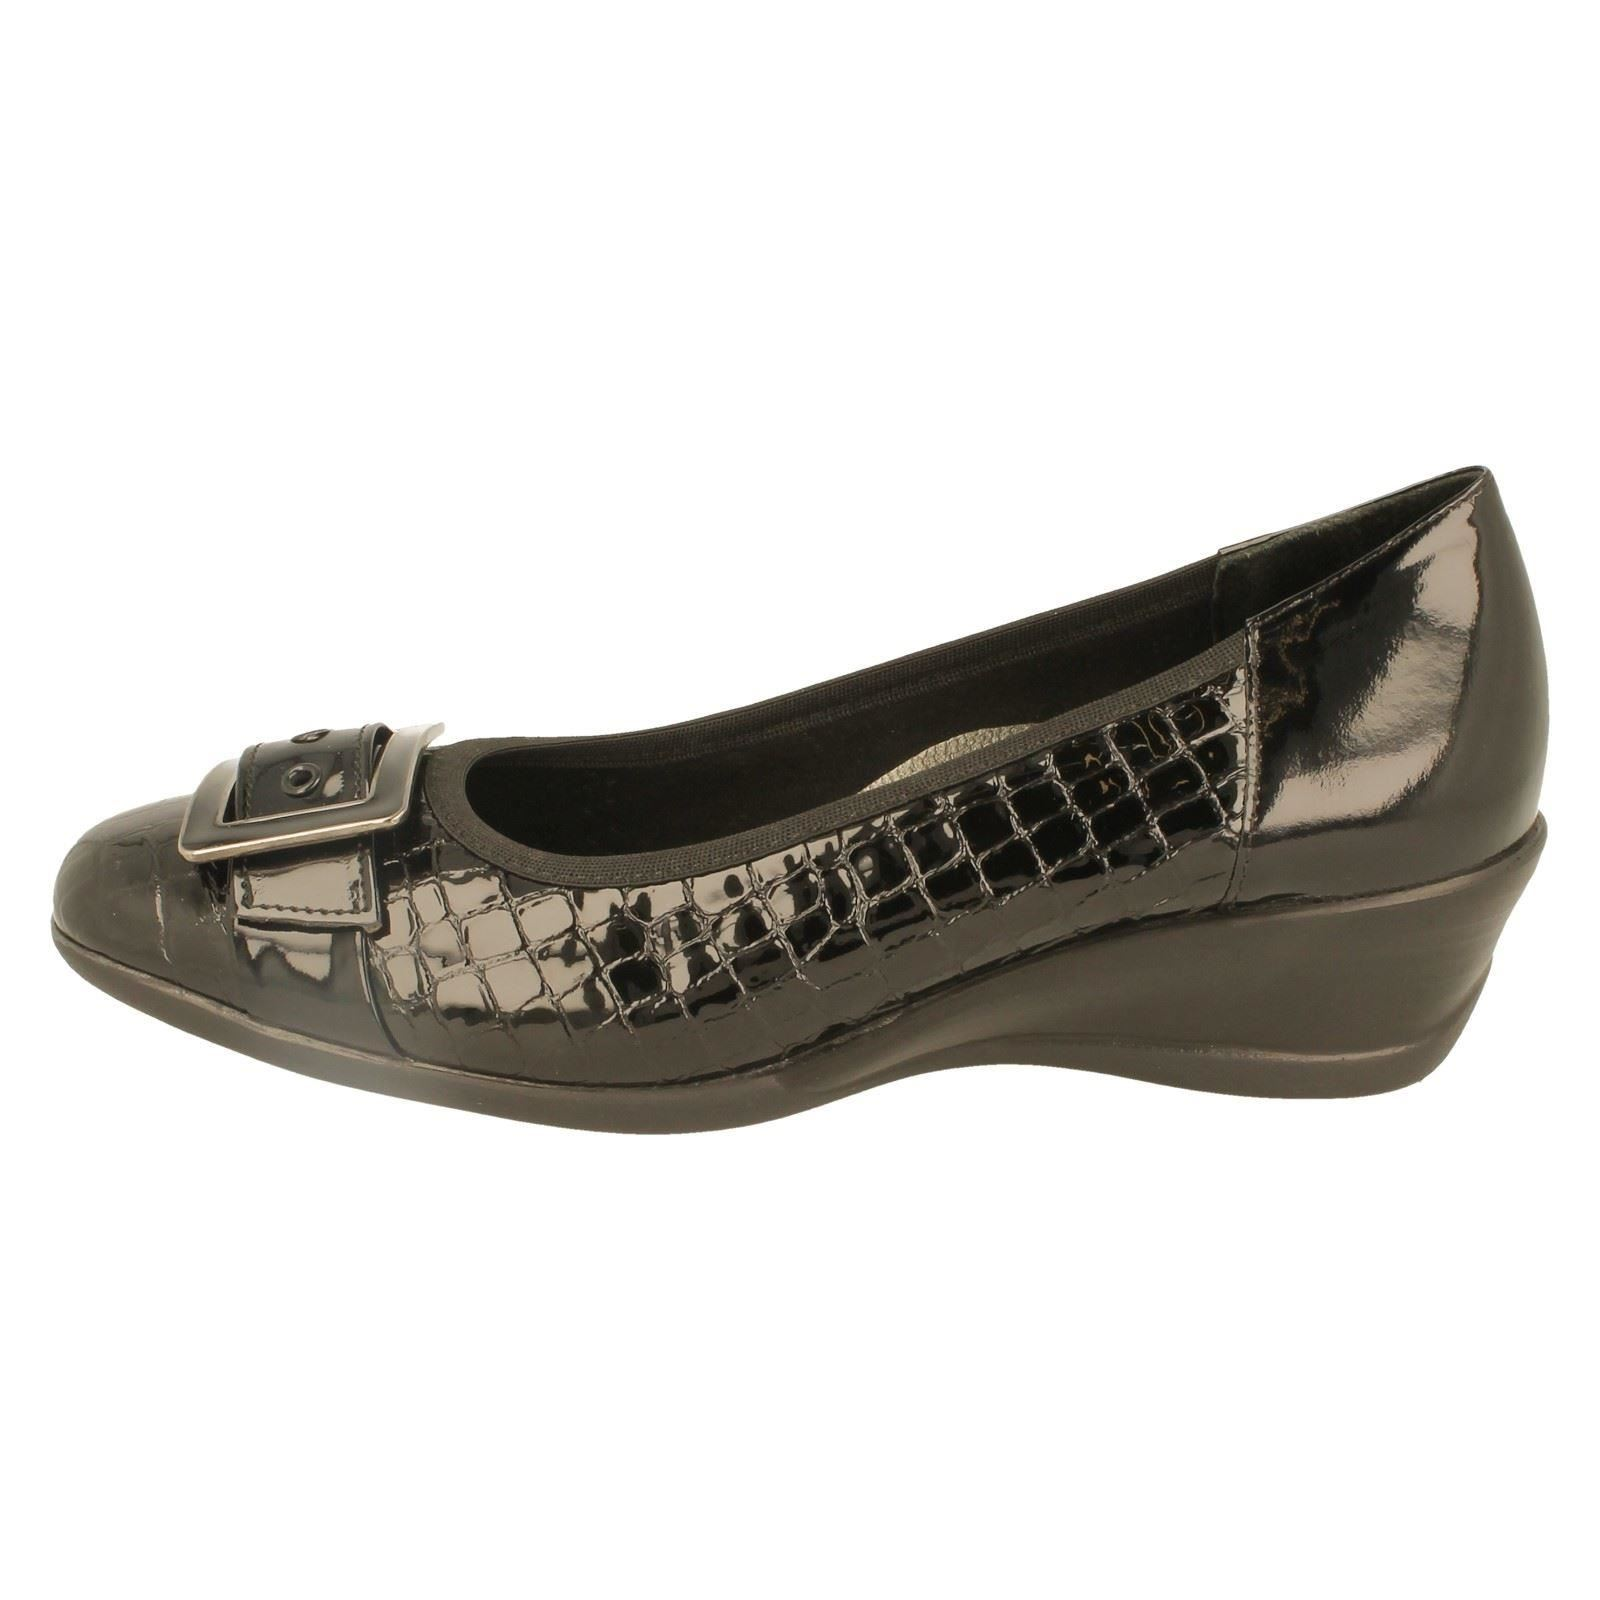 padders wide fitting wedge shoes label